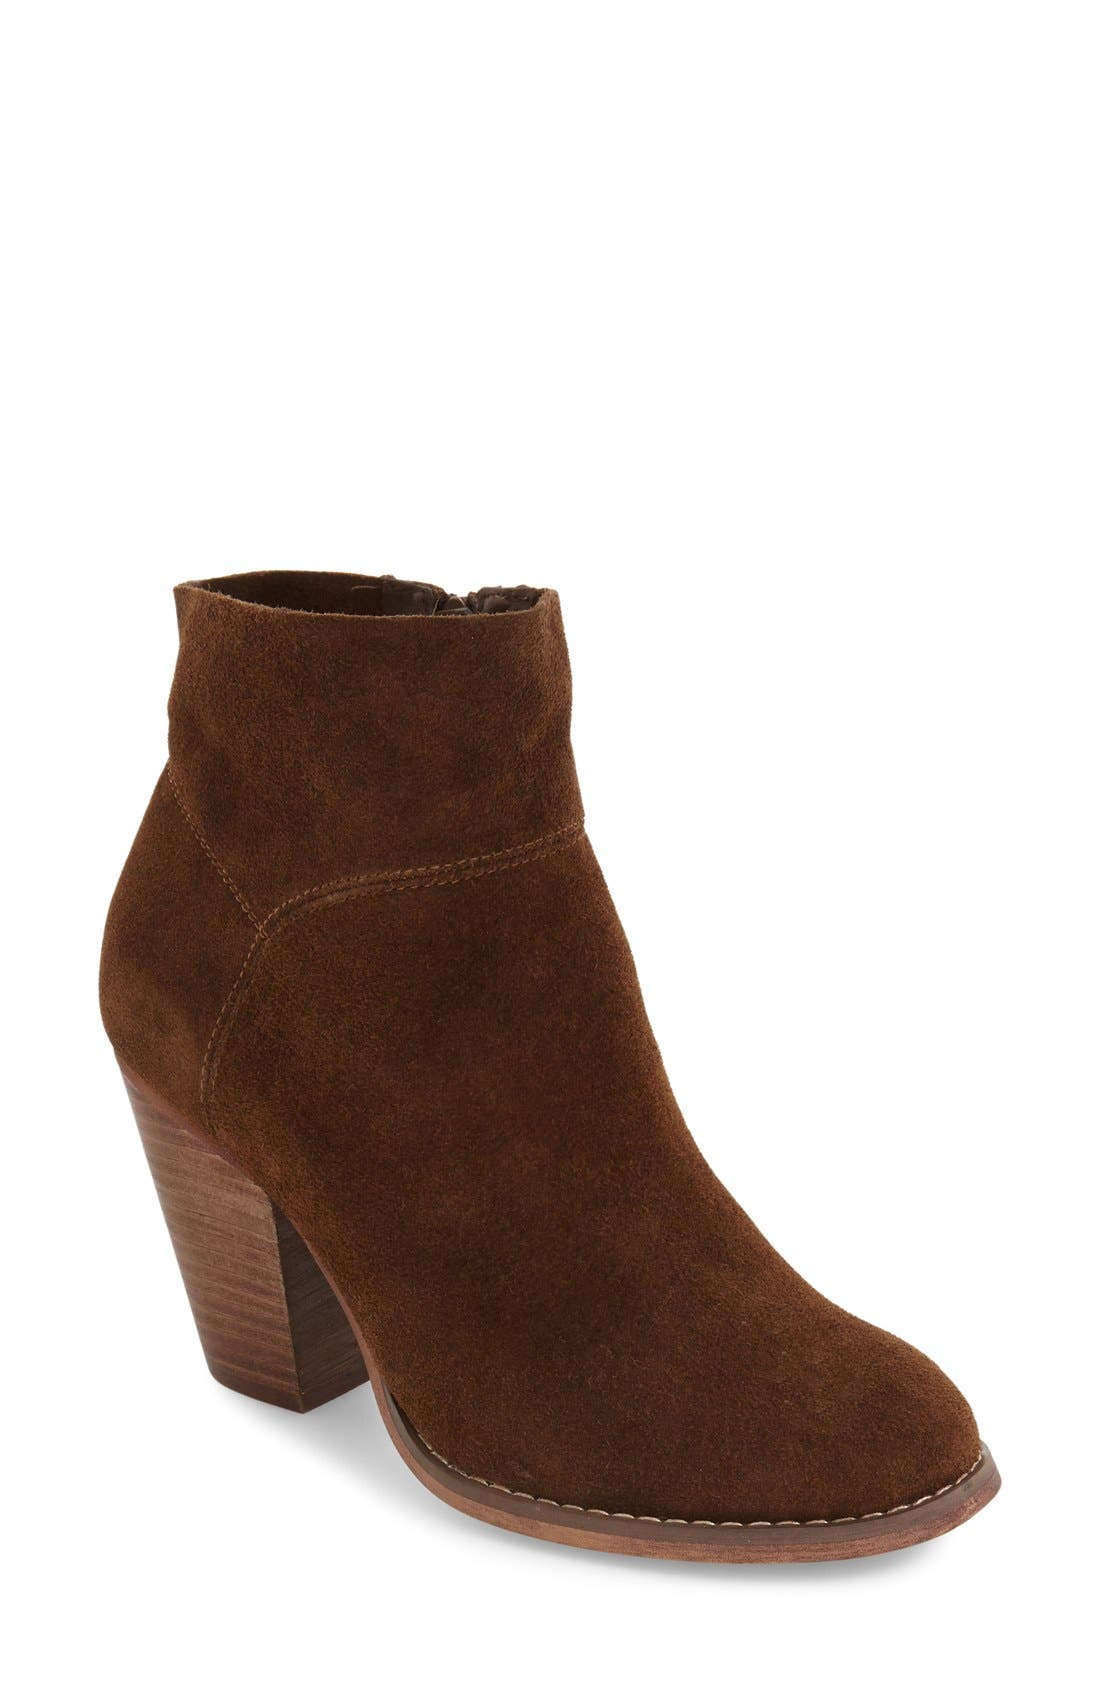 Alternate Image 1 Selected - Sole Society Alexi Bootie (Women)